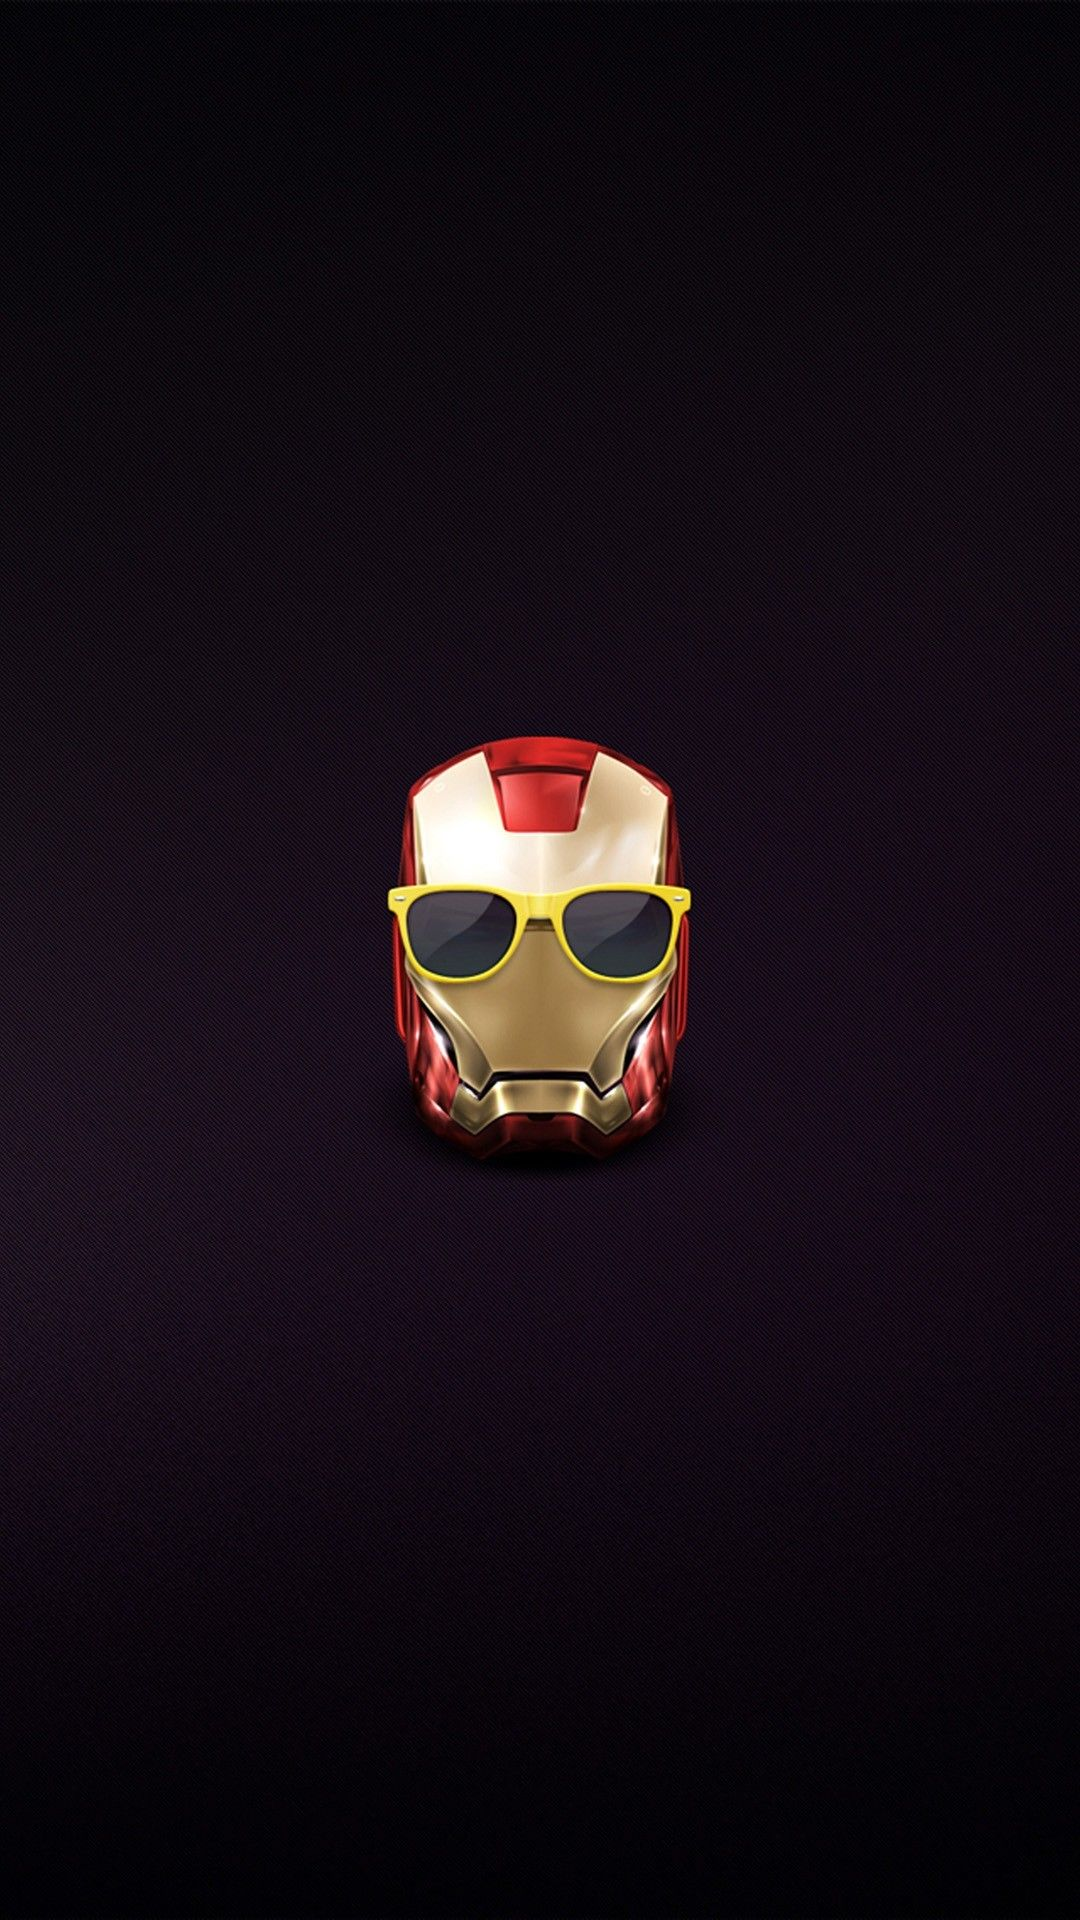 1080x1920 Pin by Neon Olan on MCU | Pinterest | Iron man wallpaper, Iron Man ...